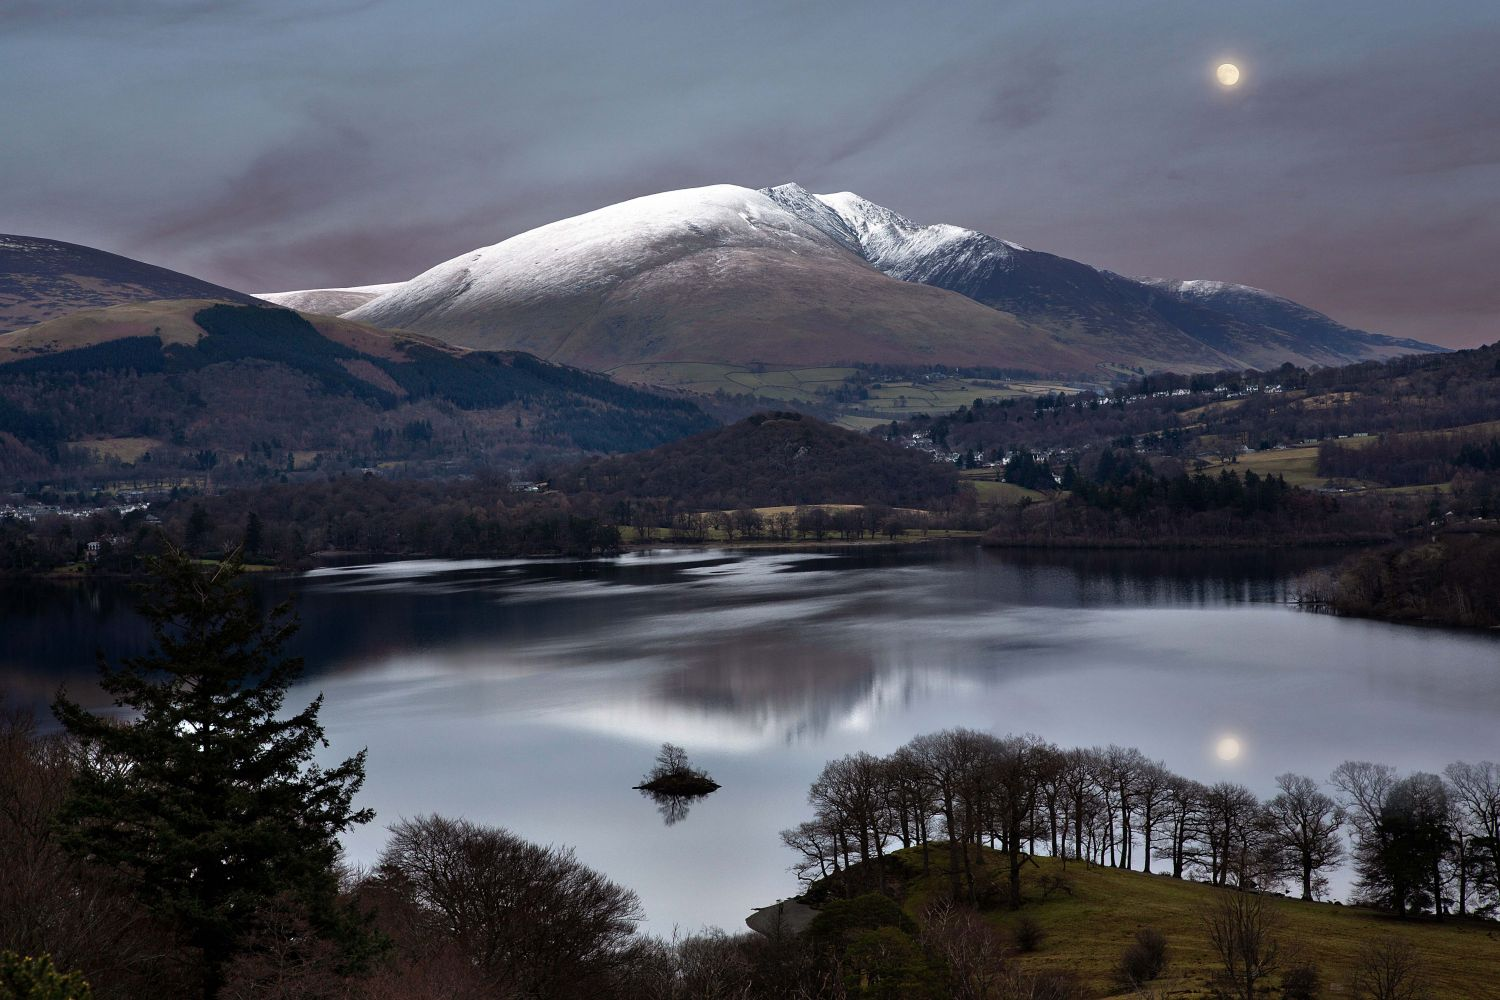 Moonrise over Blencathra - by Martin Lawrence